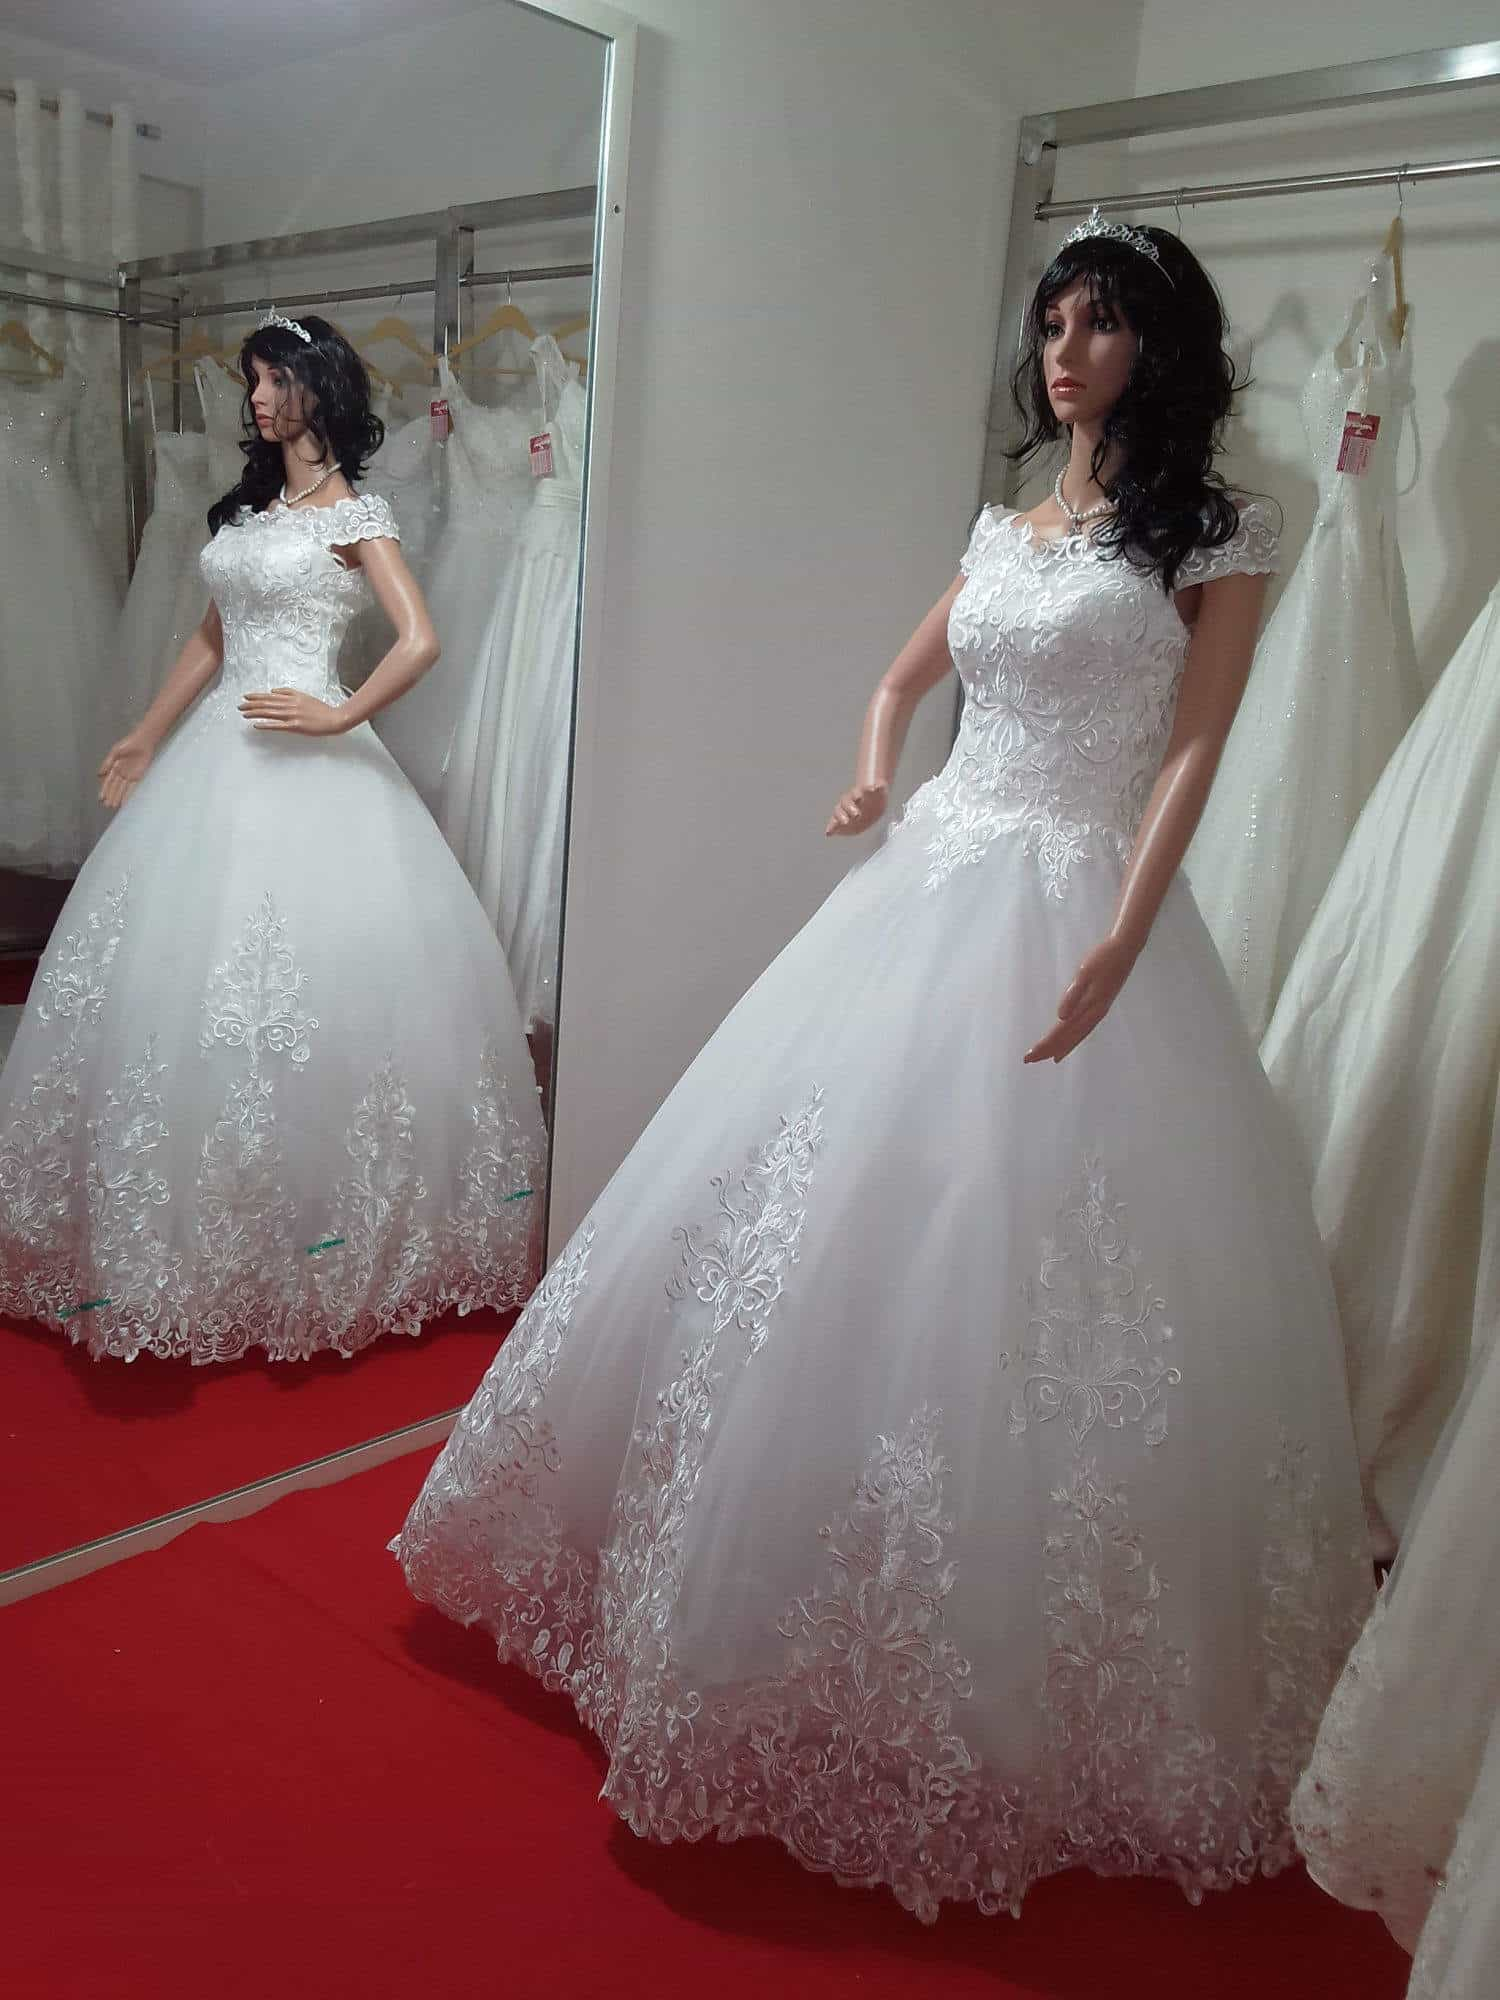 Lorean Christian Wedding Dresses Ayodhya Nagar Jewellery